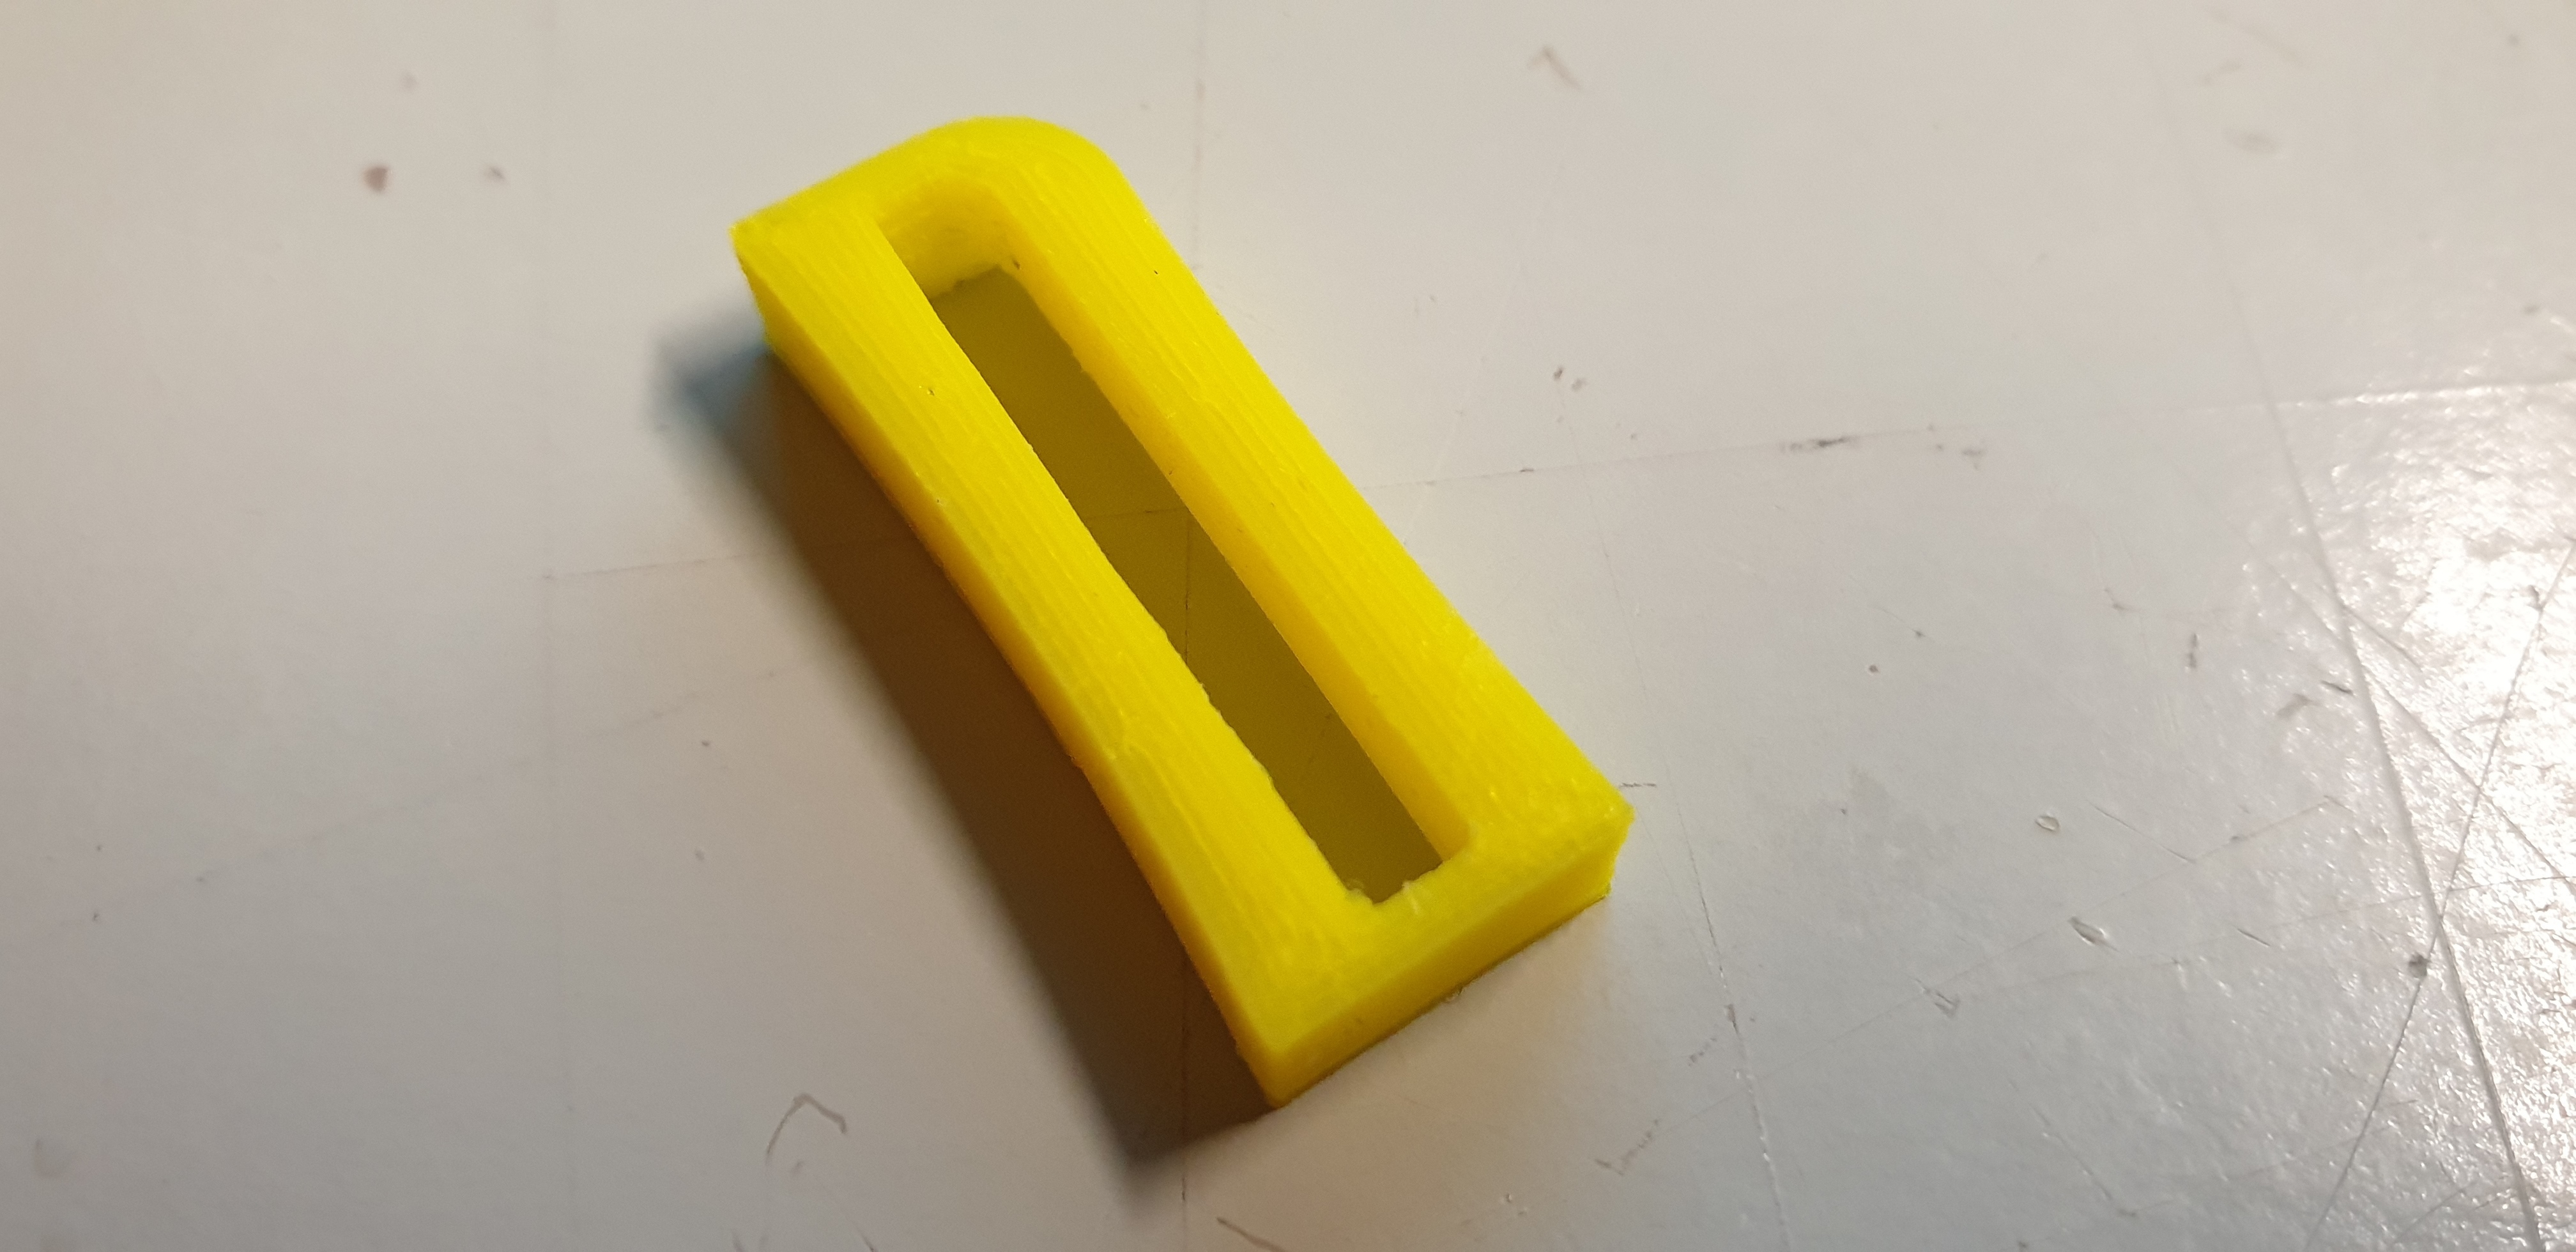 20190925_064934.jpg Download free STL file 20-Pin Connector Tightener • Object to 3D print, helmuteder